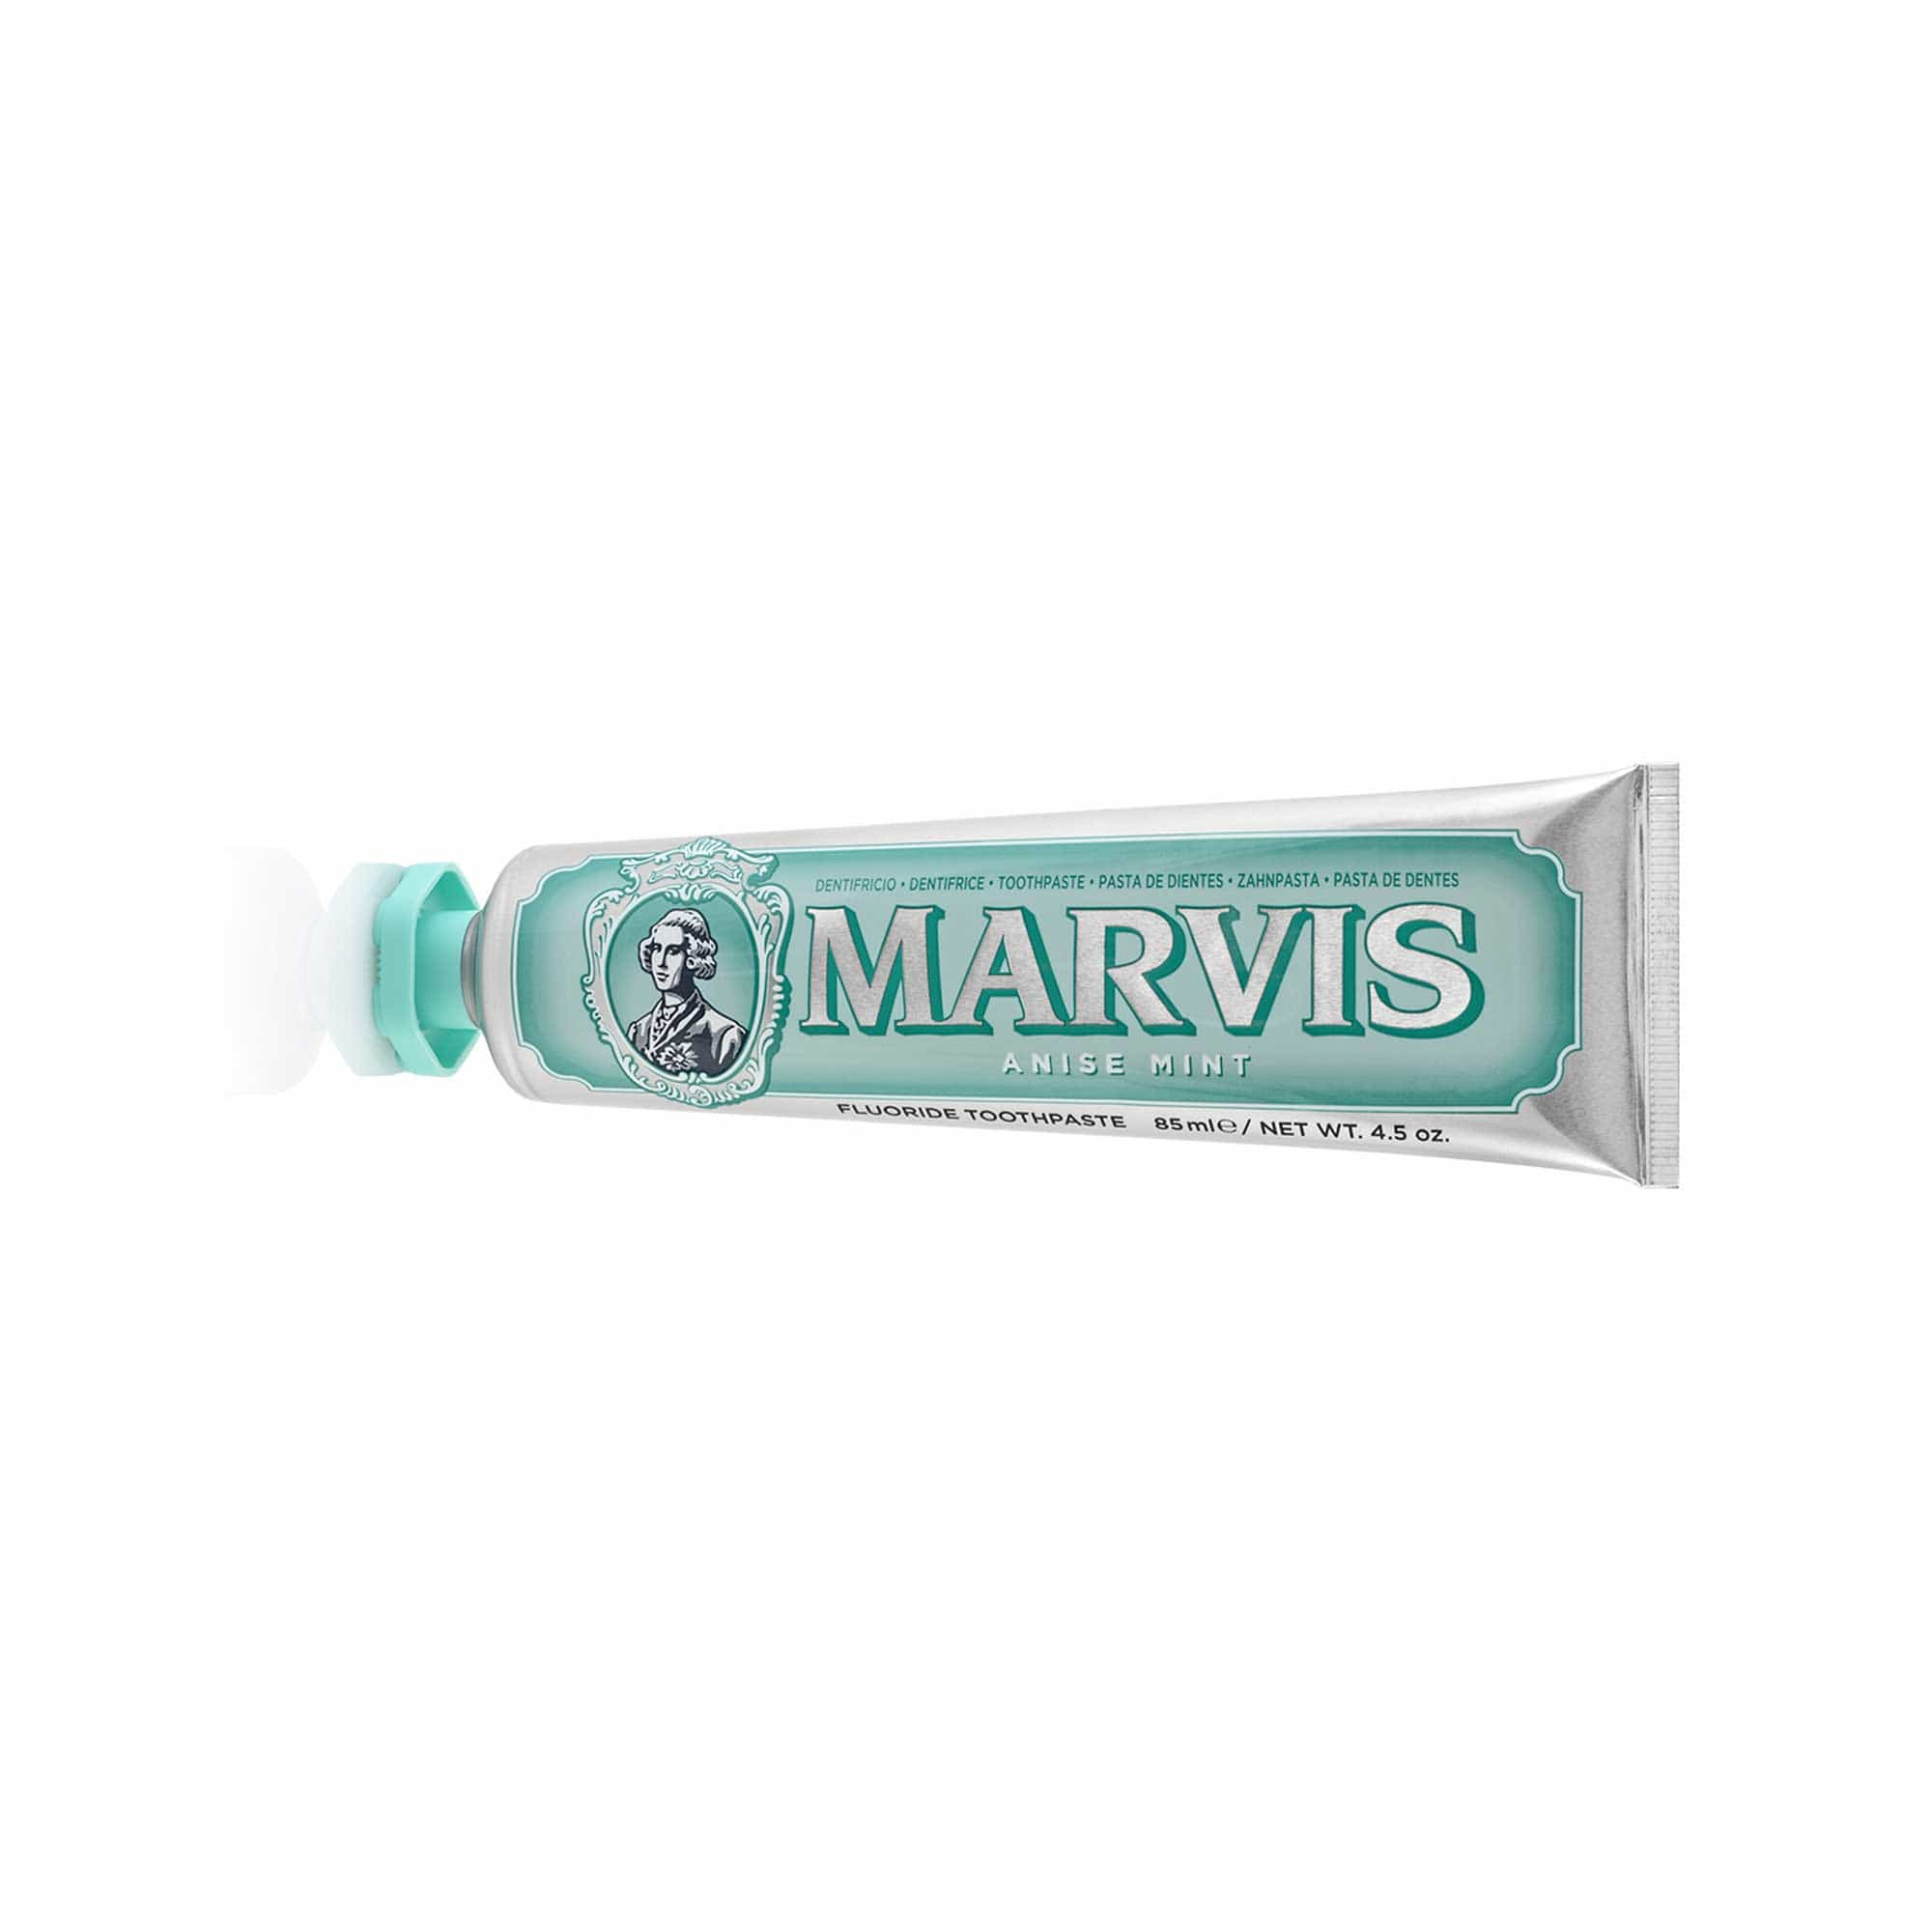 Marvis Mint Badezimmer Anise Mint 85ml Zahncreme